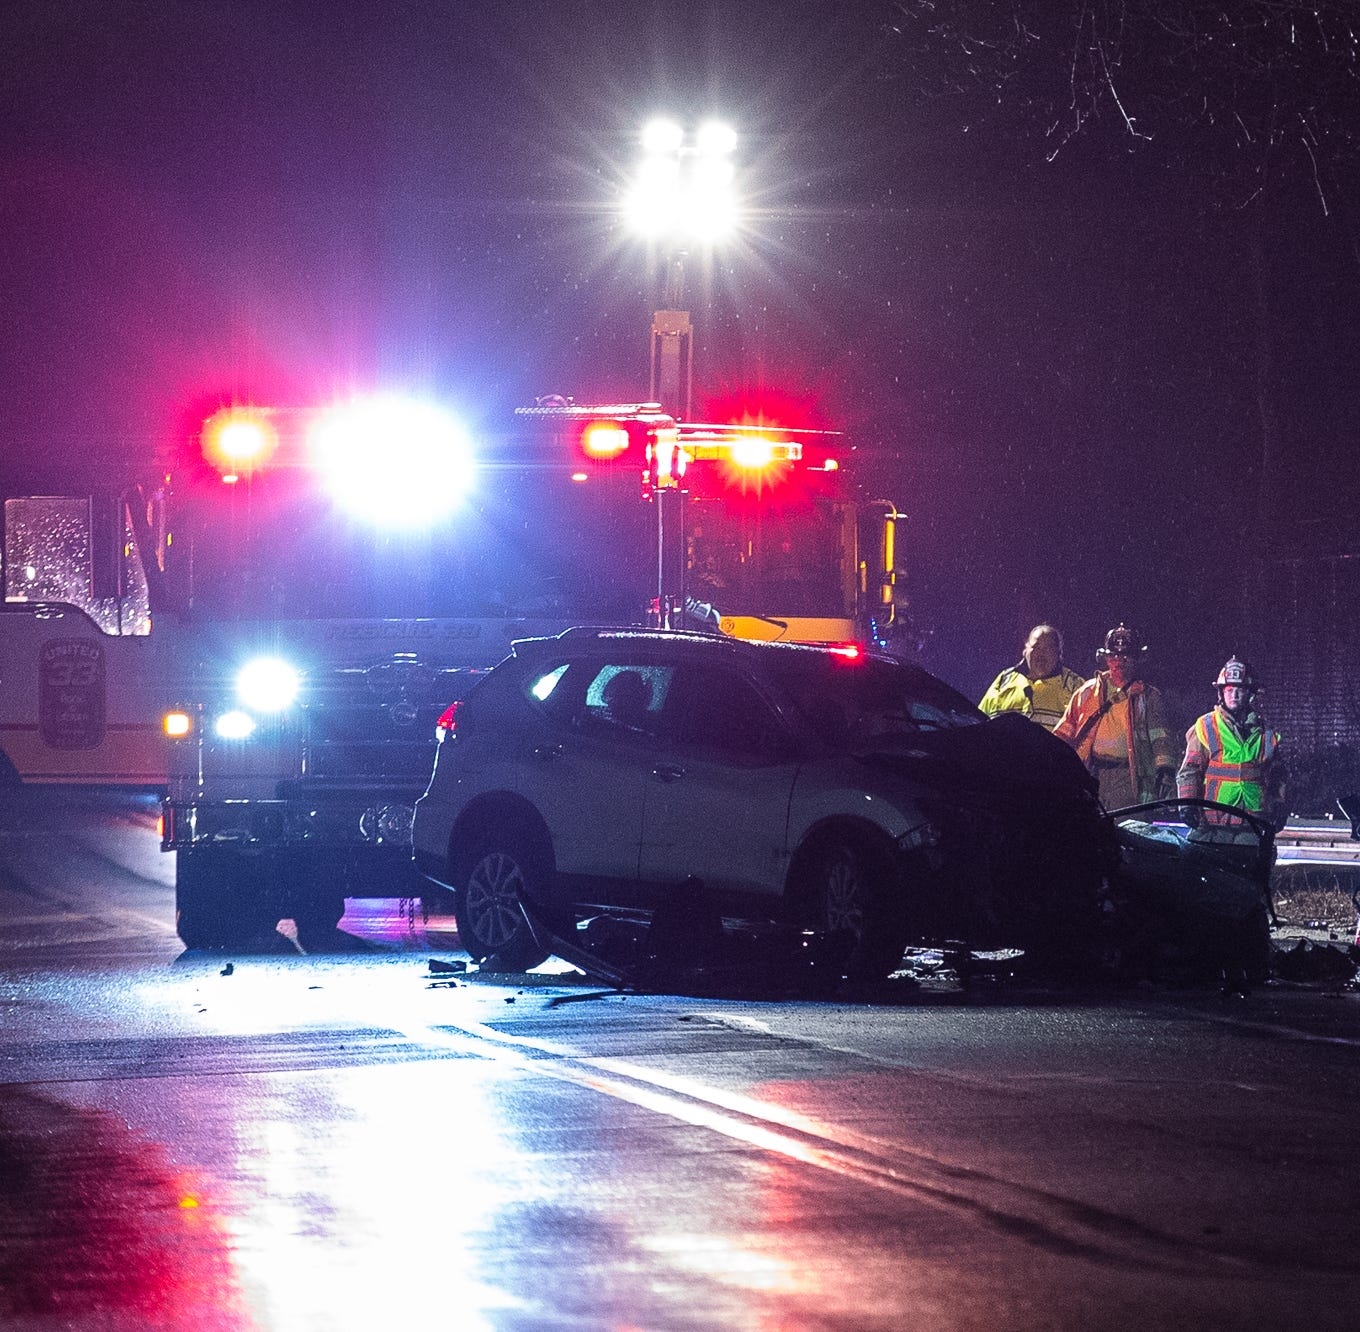 Drivers trapped in cars after crash in Oxford Township crash identified